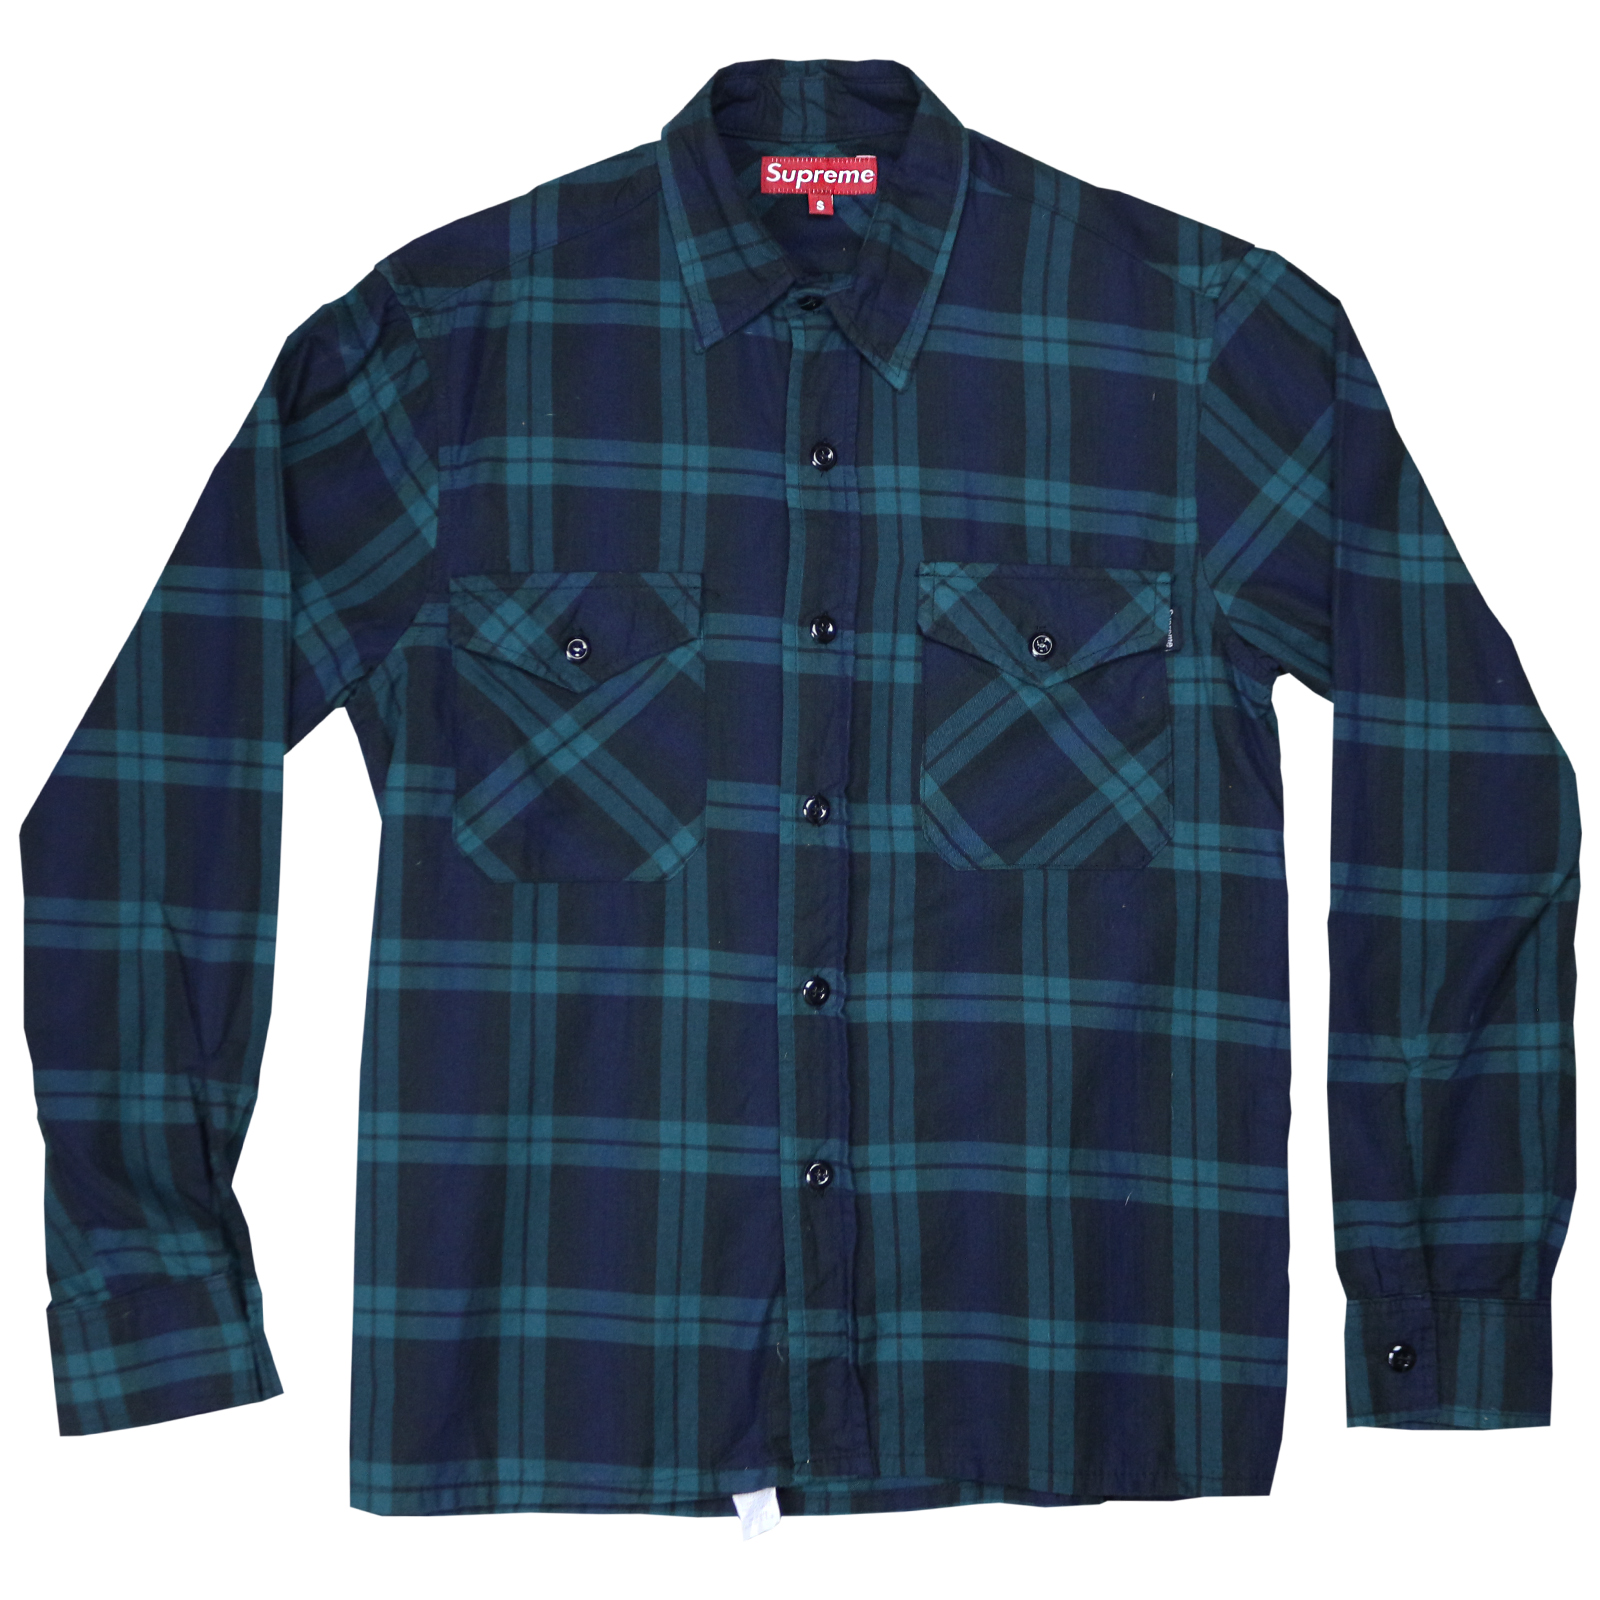 30.Sup_Flannel_FRONT